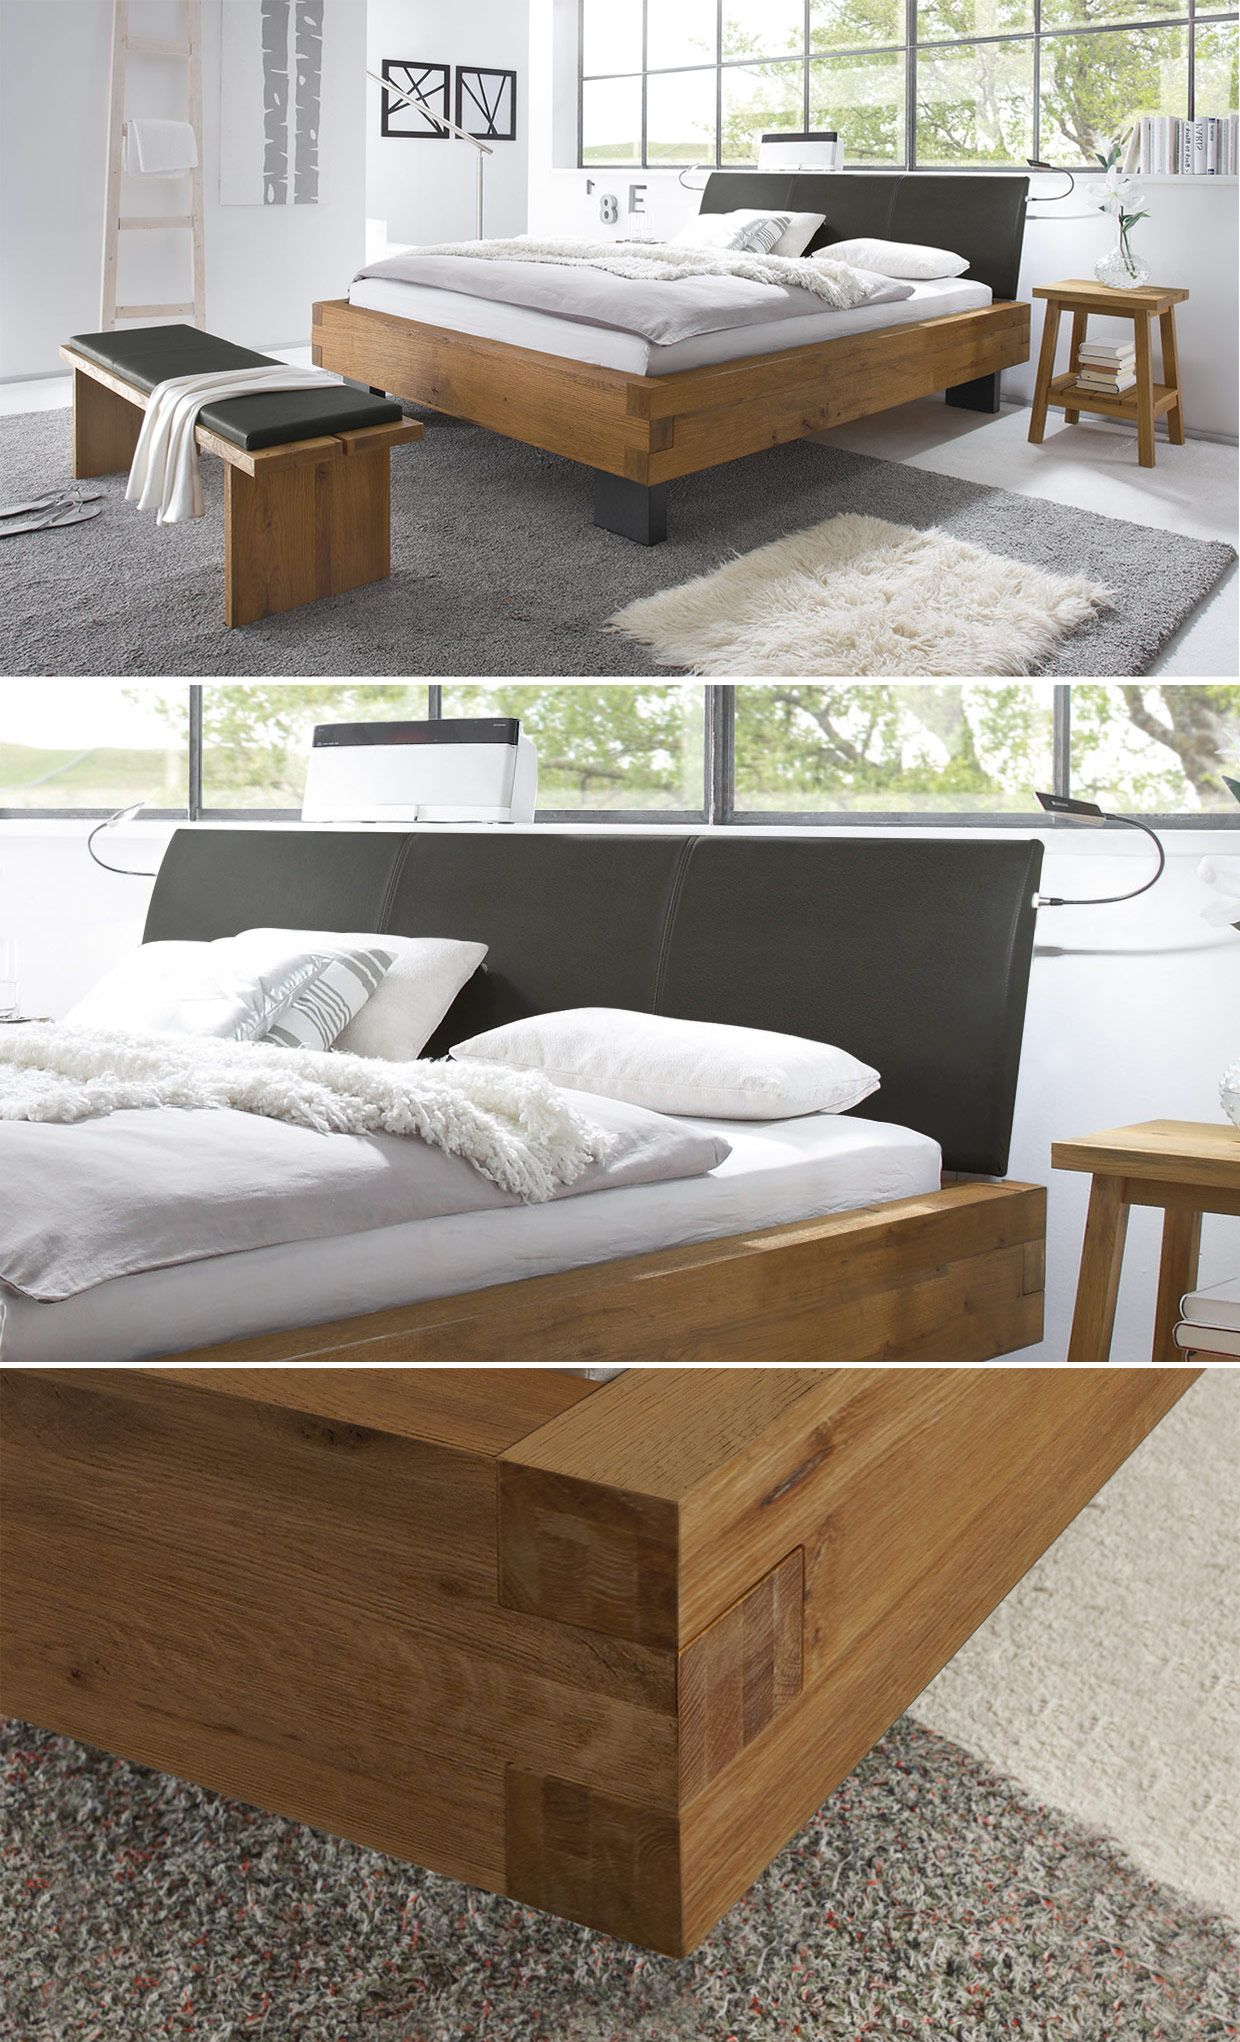 Bett Schlafzimmer Bett Quotleros Quot In 2019 Wood Projects Closet Bedroom Bed